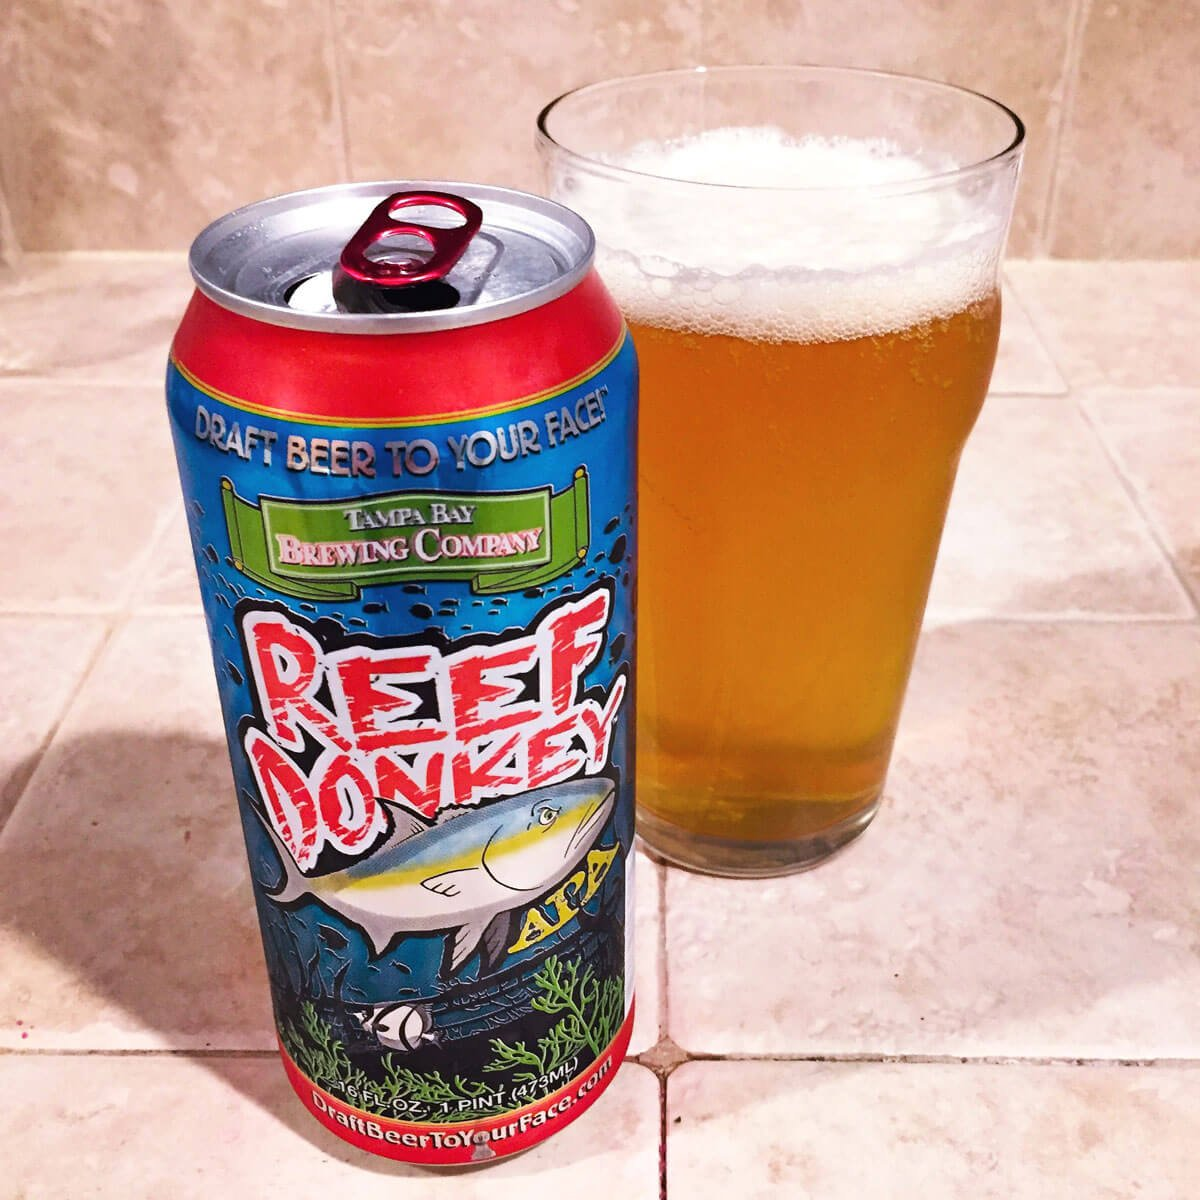 Reef Donkey, an American Pale Ale by Tampa Bay Brewing Company